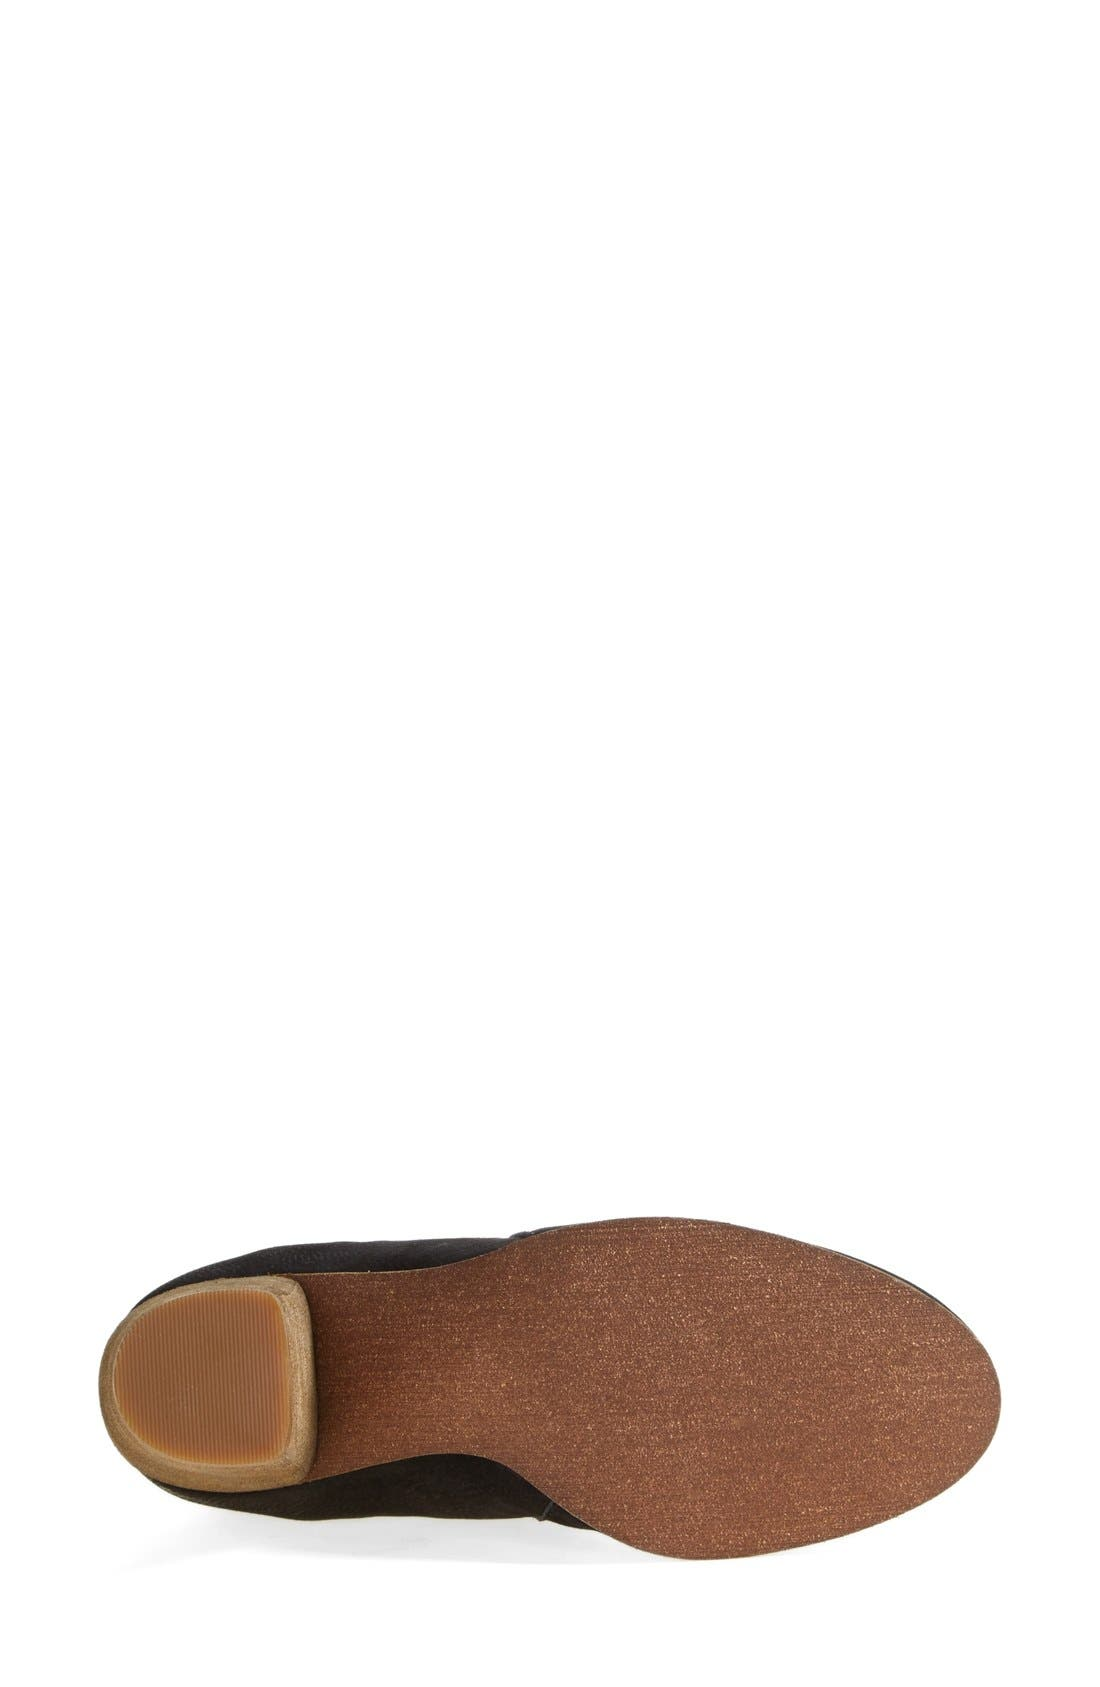 'Andover' Bootie,                             Alternate thumbnail 2, color,                             001